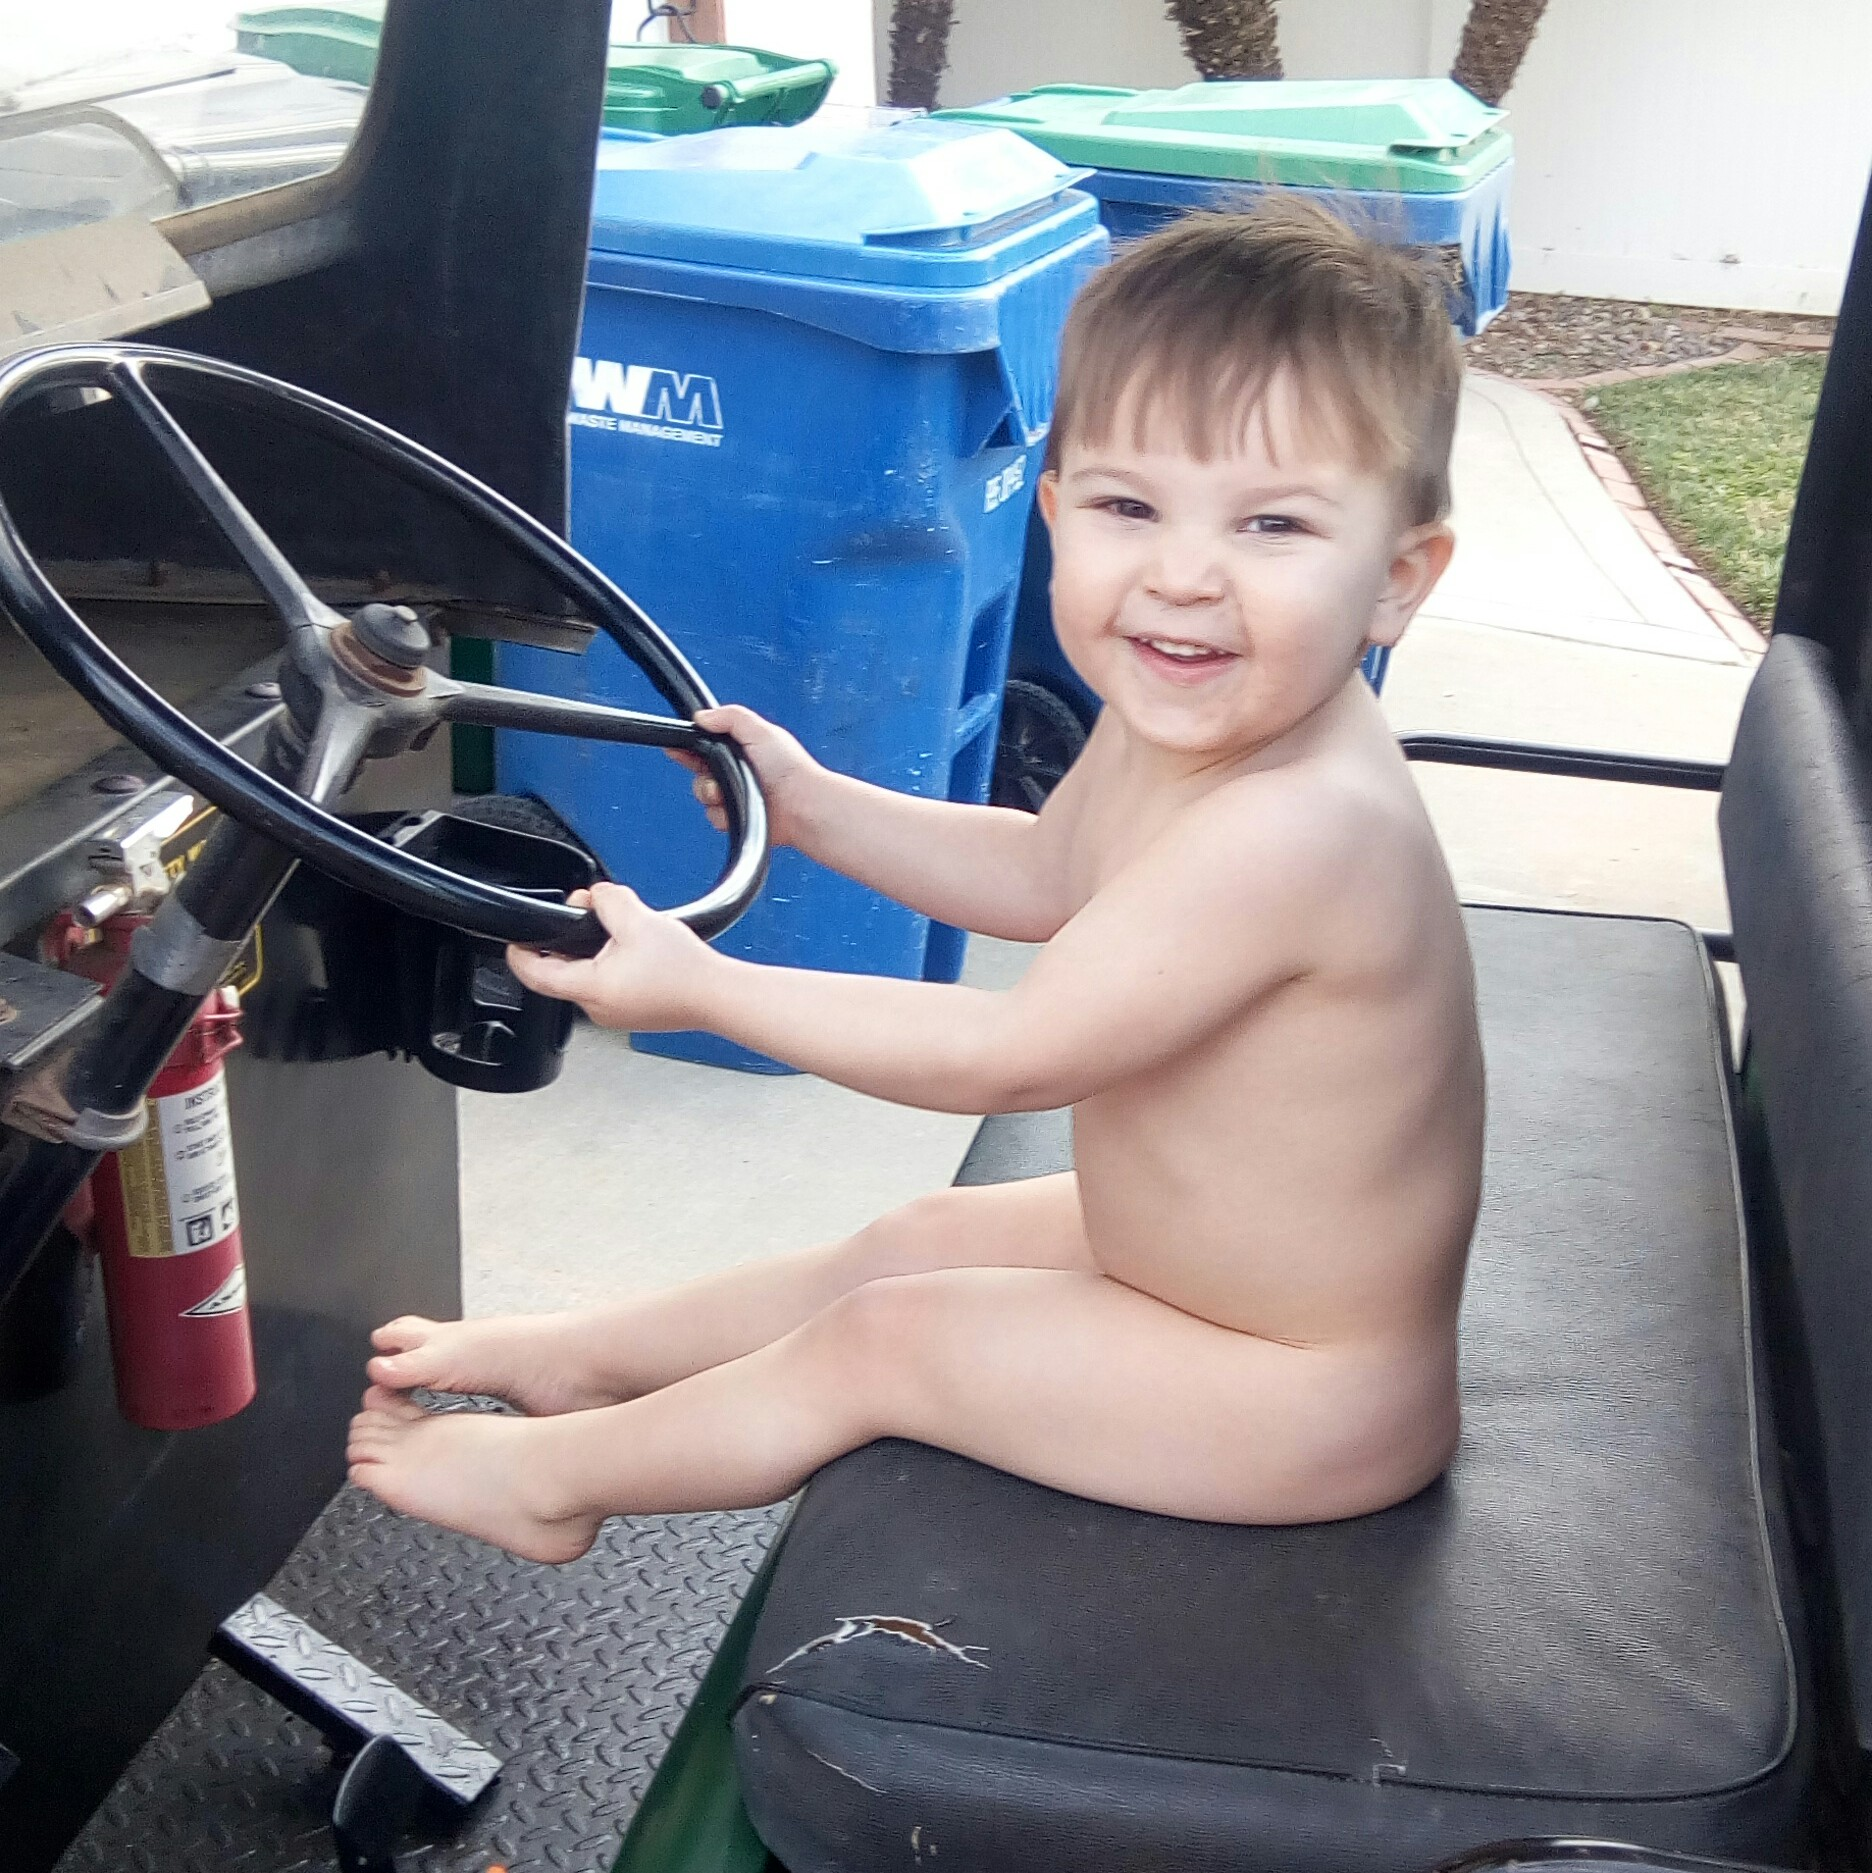 naked toddler car theft freedom